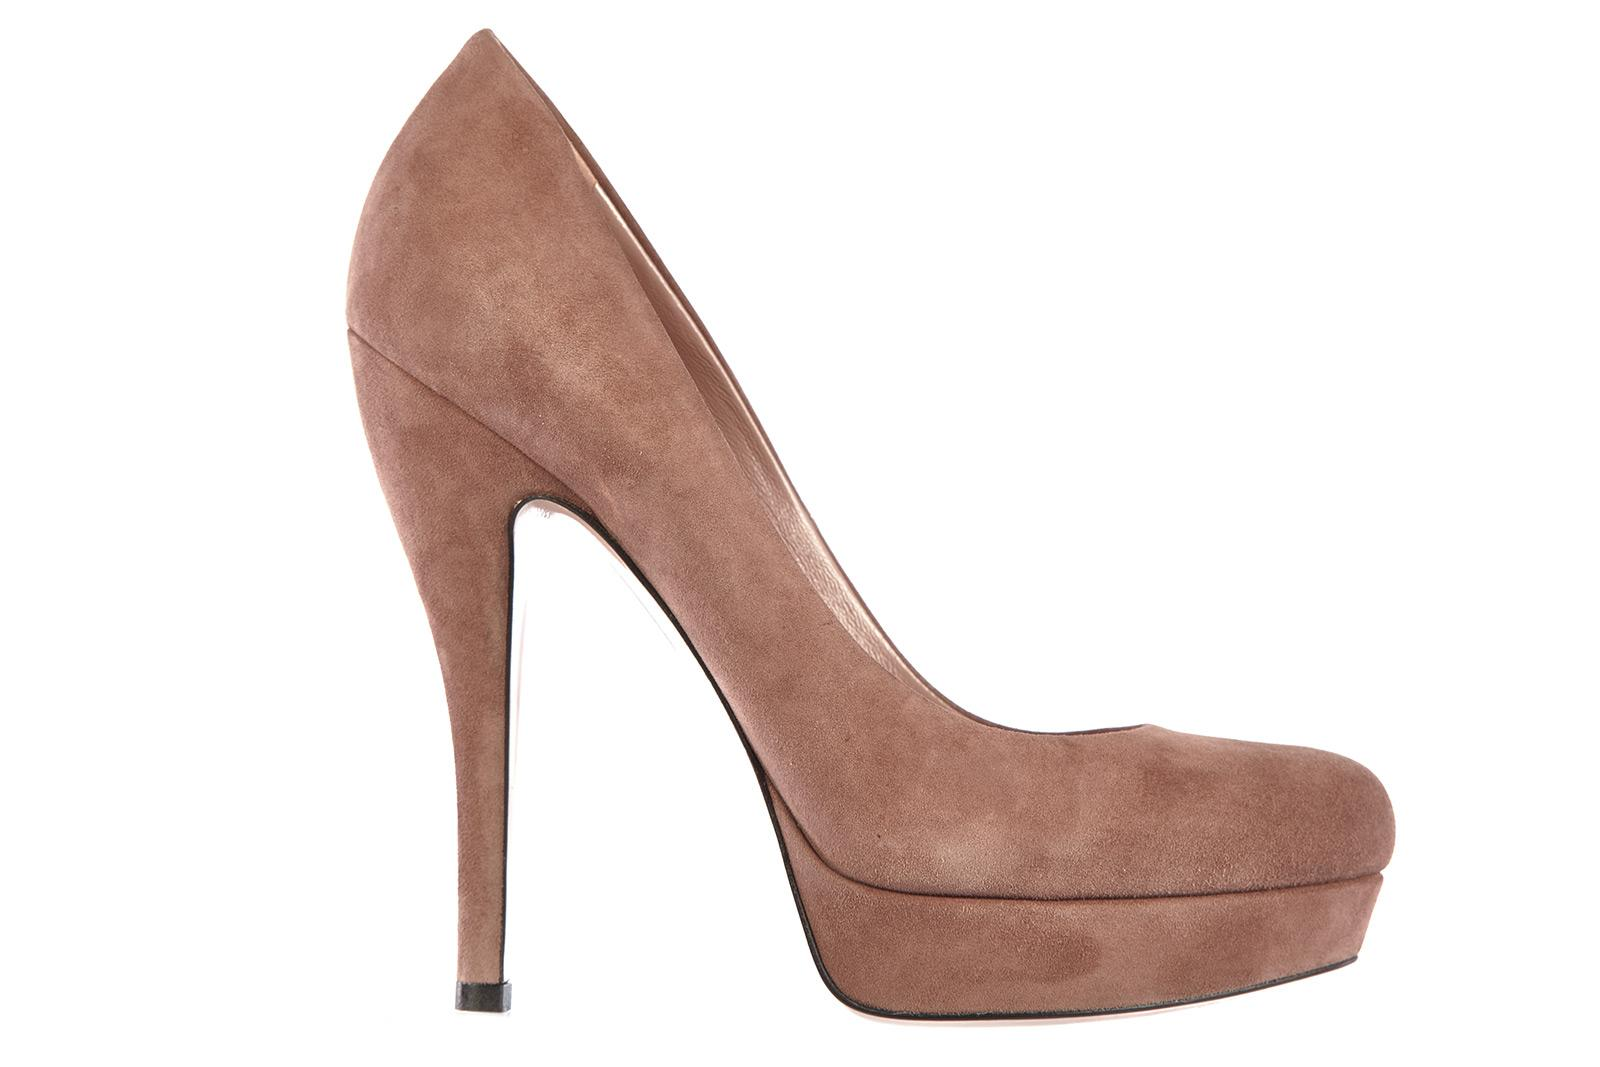 Gucci Women's Suede Platform Pumps Court Shoes Heel In Beige